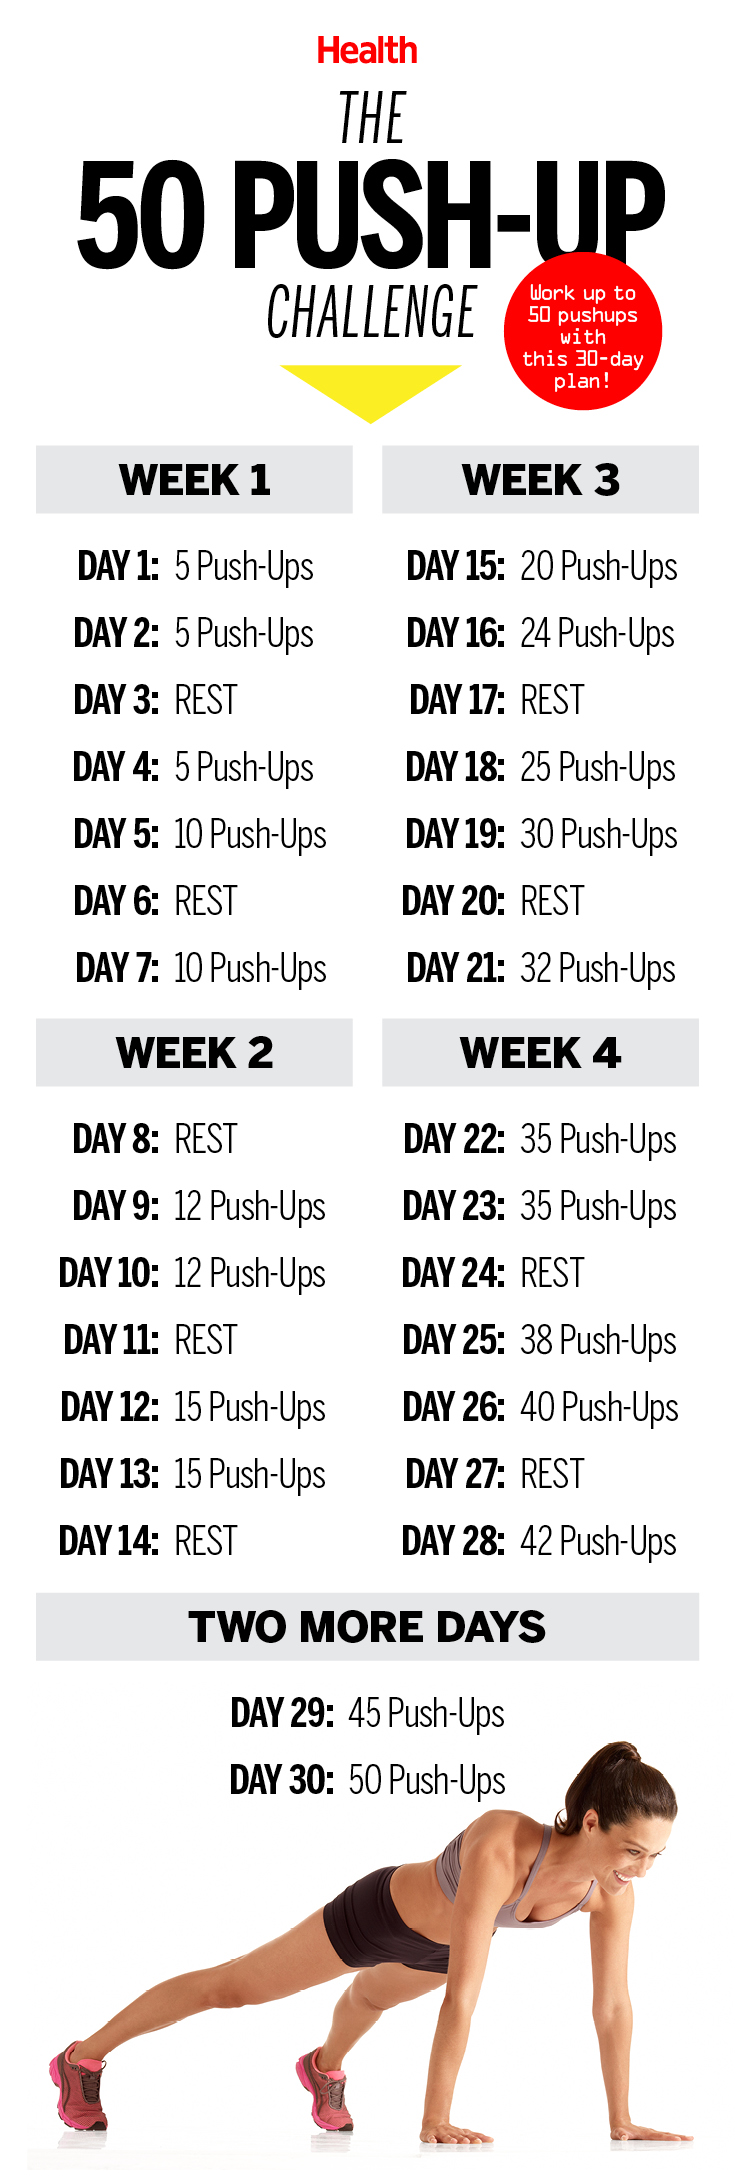 This 50 PushUp Challenge Will Transform Your Body in 30 Days  Health